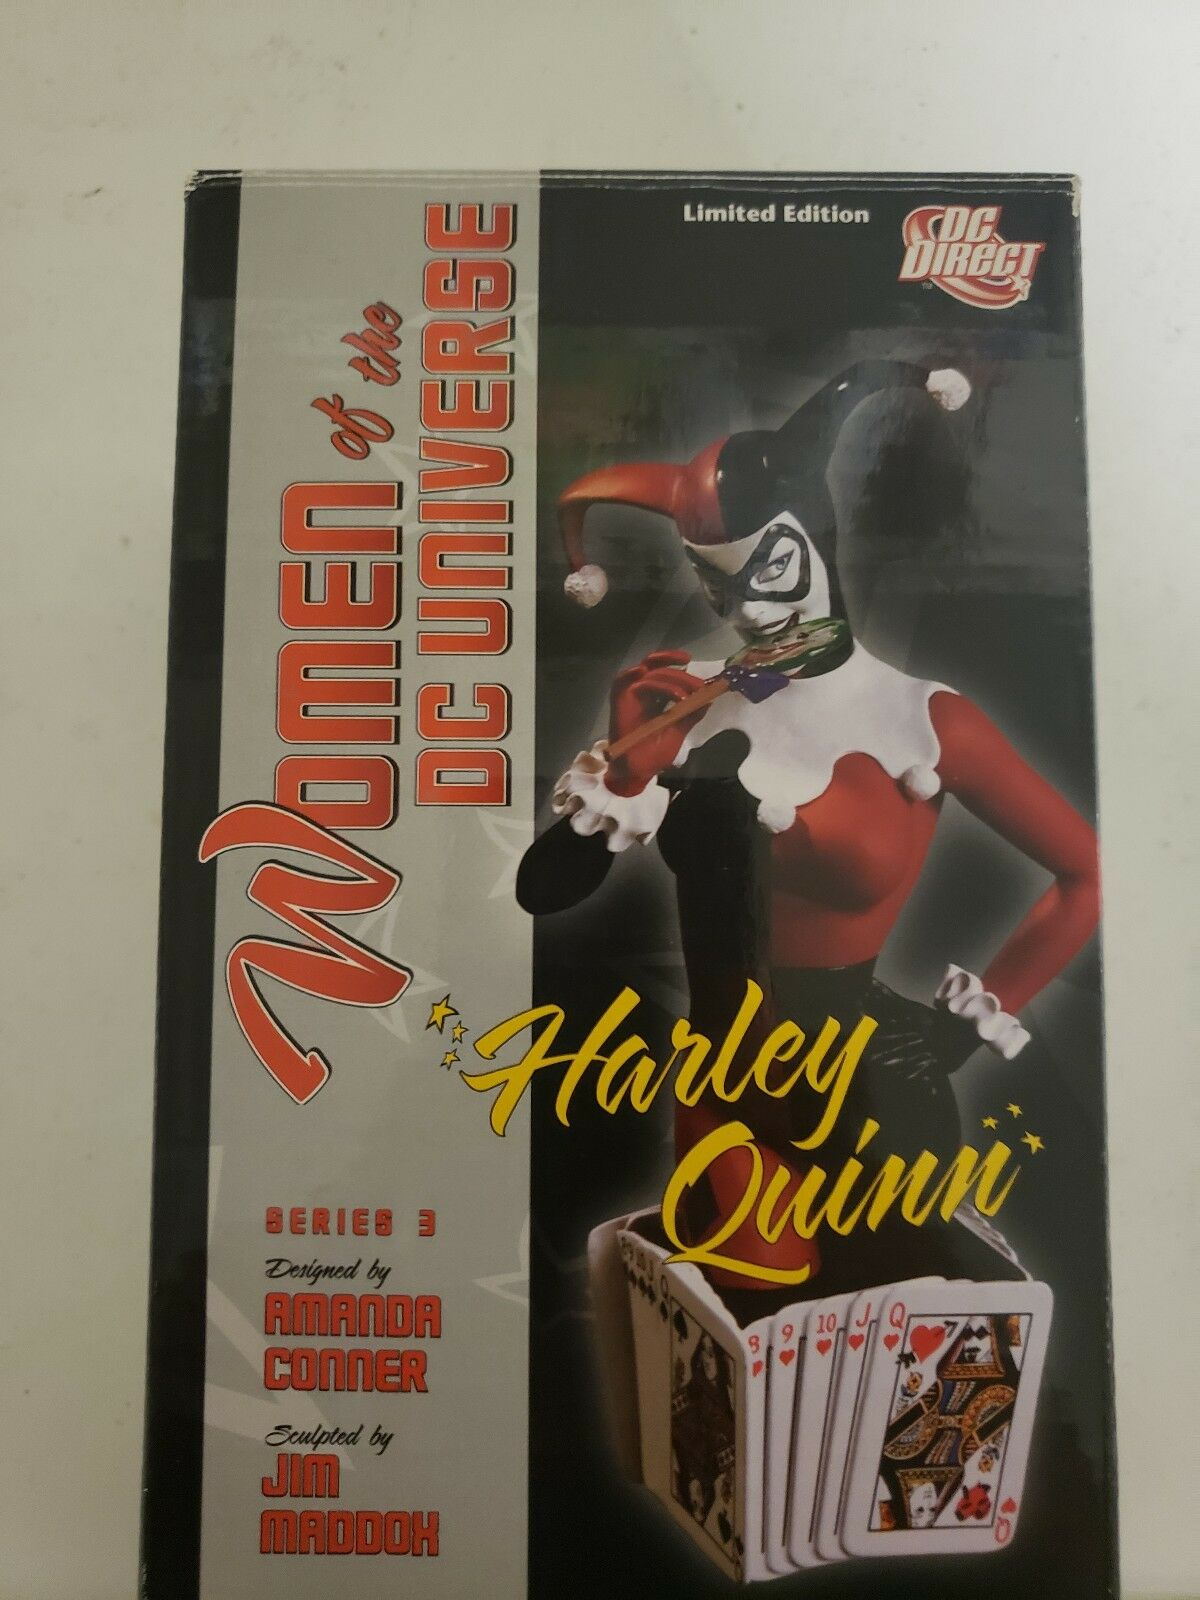 DC UNIVERSO SERIE 3 Harley Quinn autobusto DC Collectibles  15325000 Direct